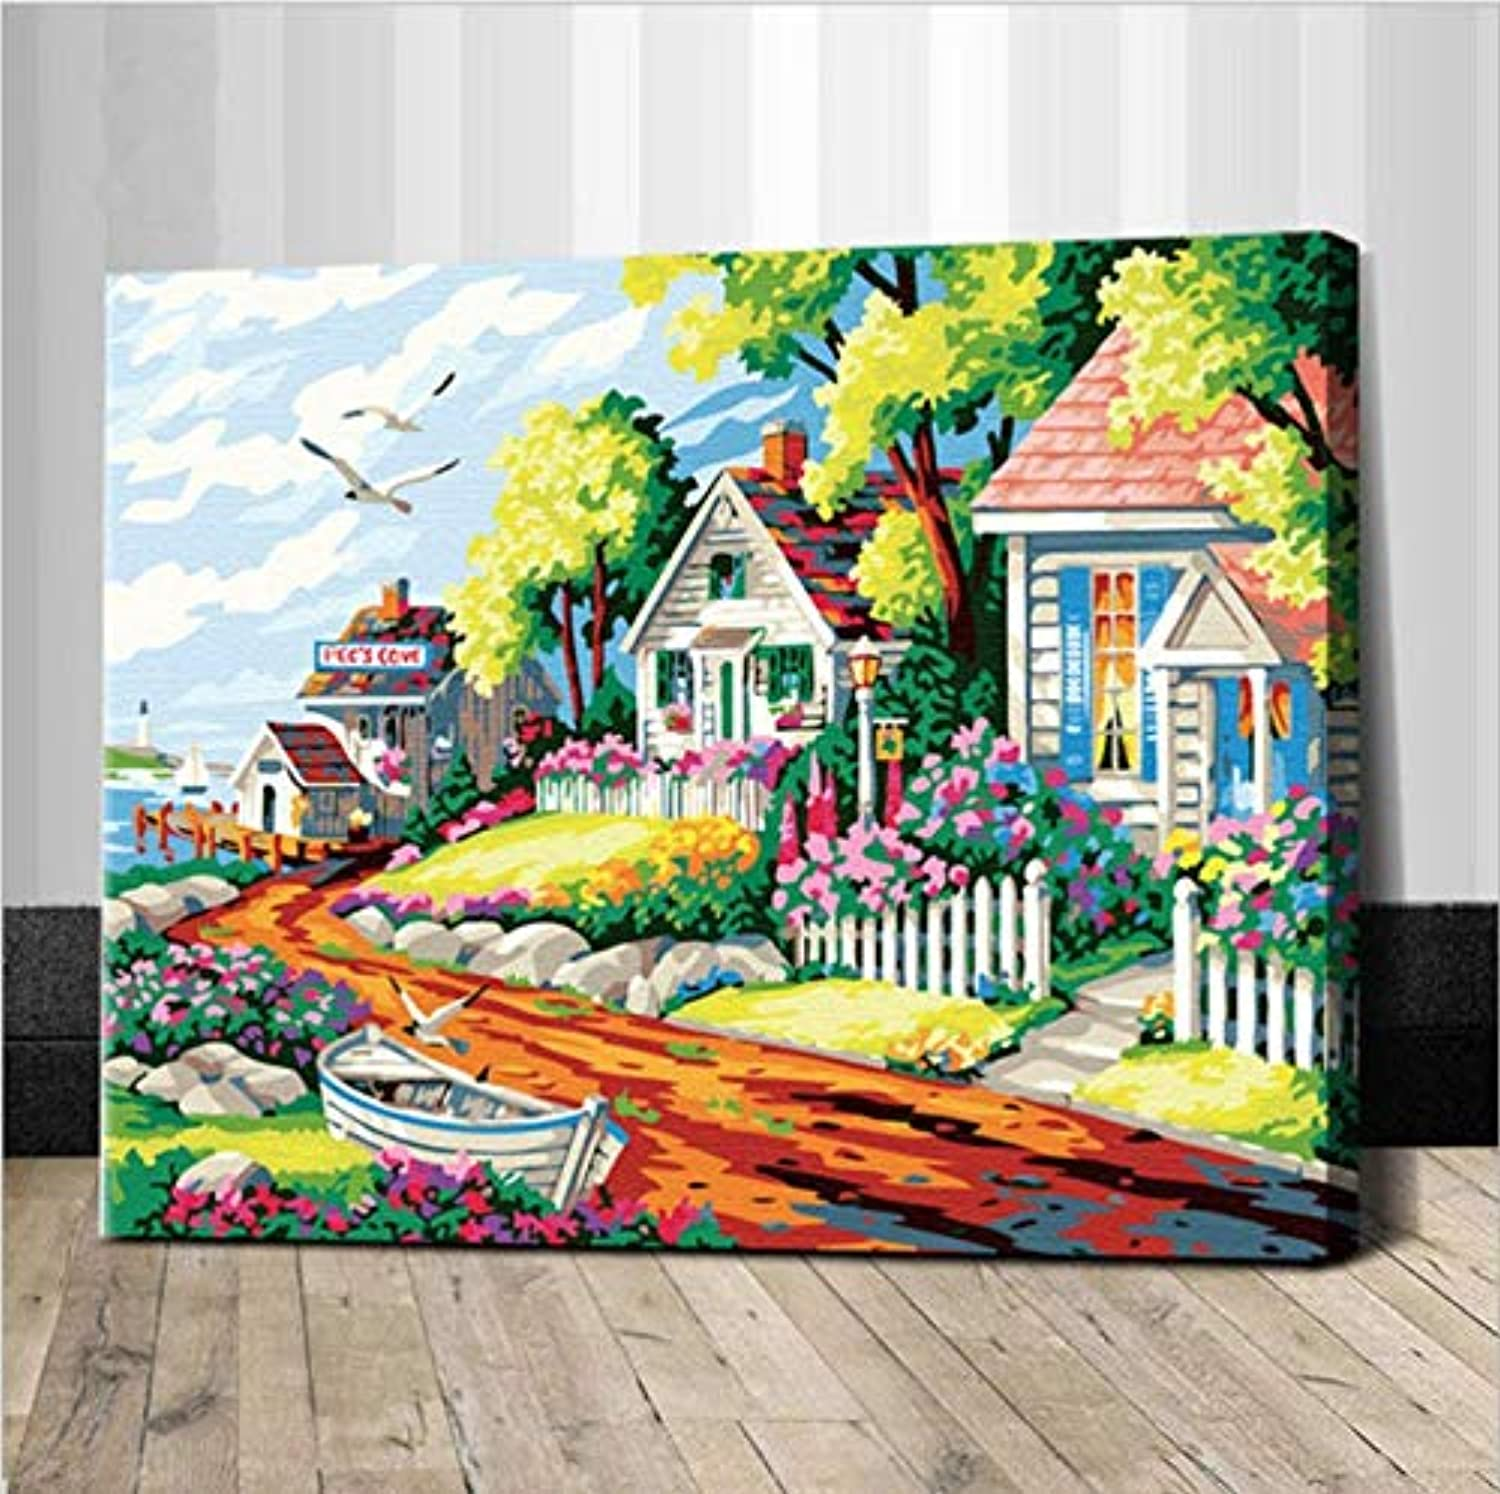 UPUPUPUP Seaside Picture Painting By Numbers On Wall Acrylic Cartoon Villa coloring By Numbers Diy Canvas Handpainted Arts,Tworidc550X70Cm Framed